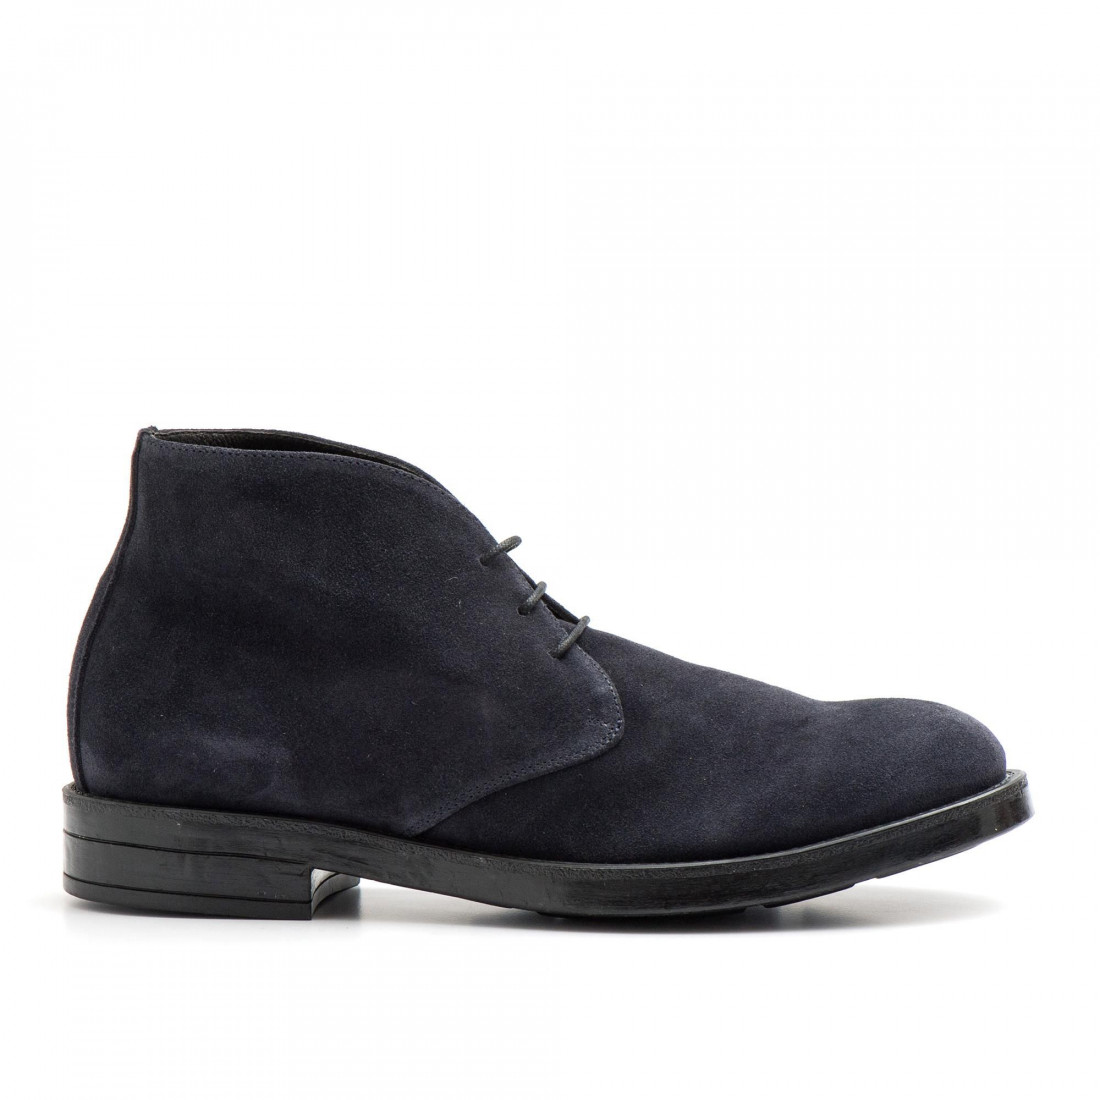 lace up ankle boots man eveet 18621camoscio blu 3806